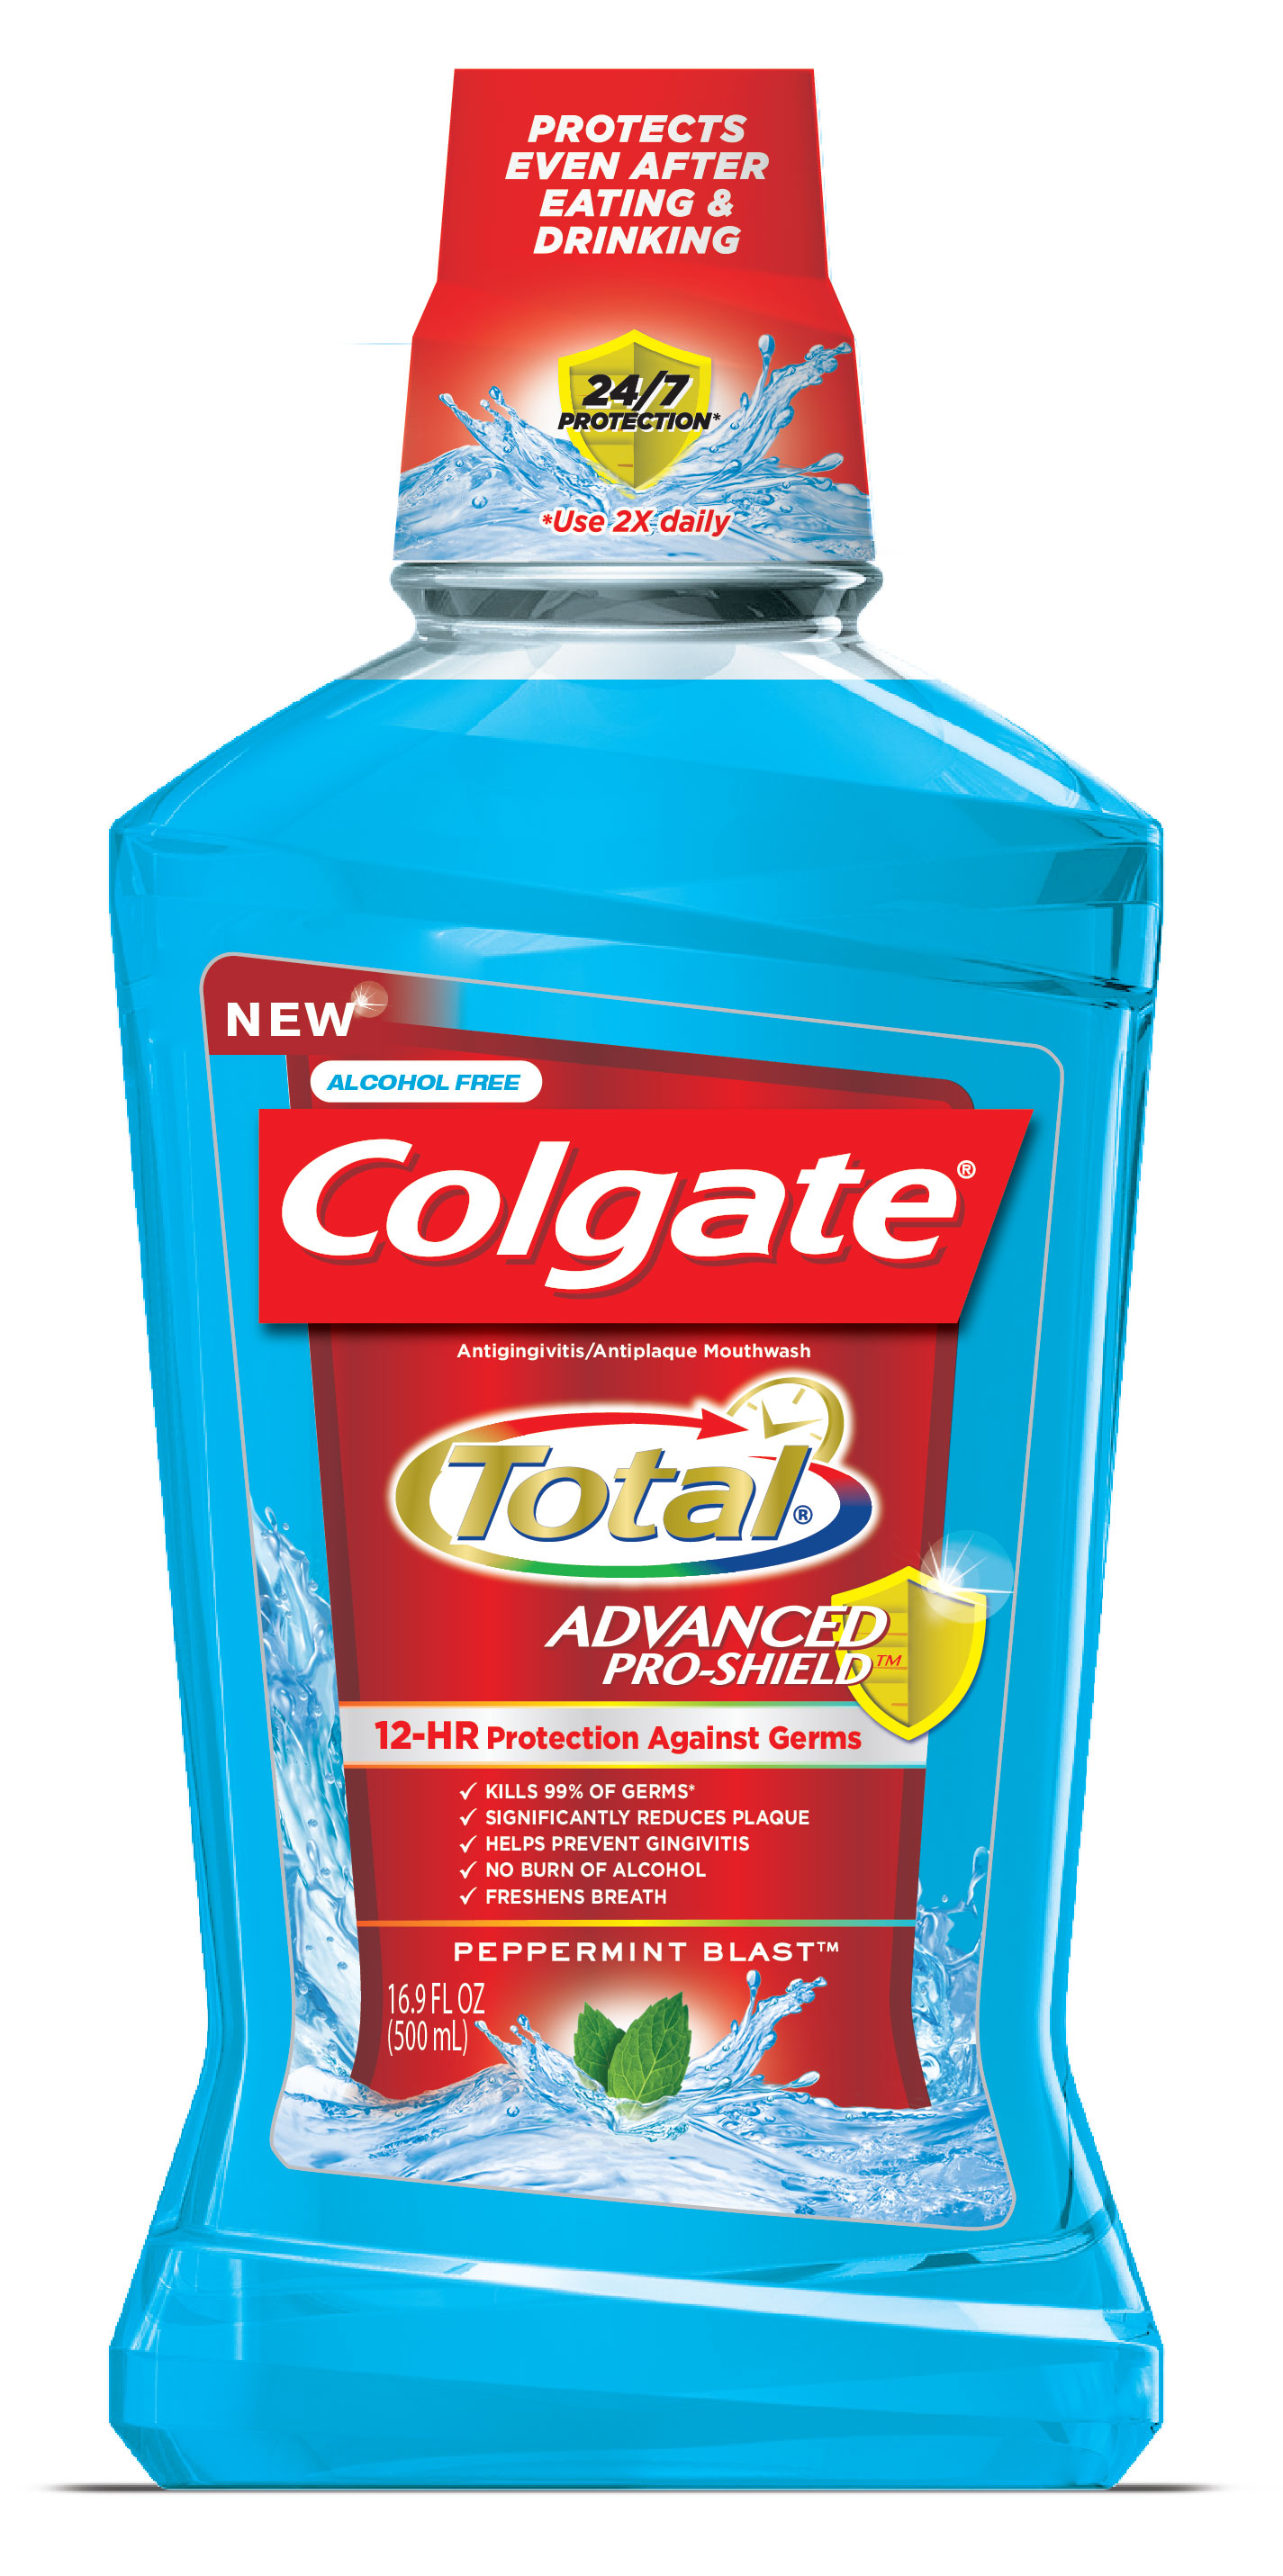 Chemical triclosan used in Colgate Total toothpaste is linked to cancer